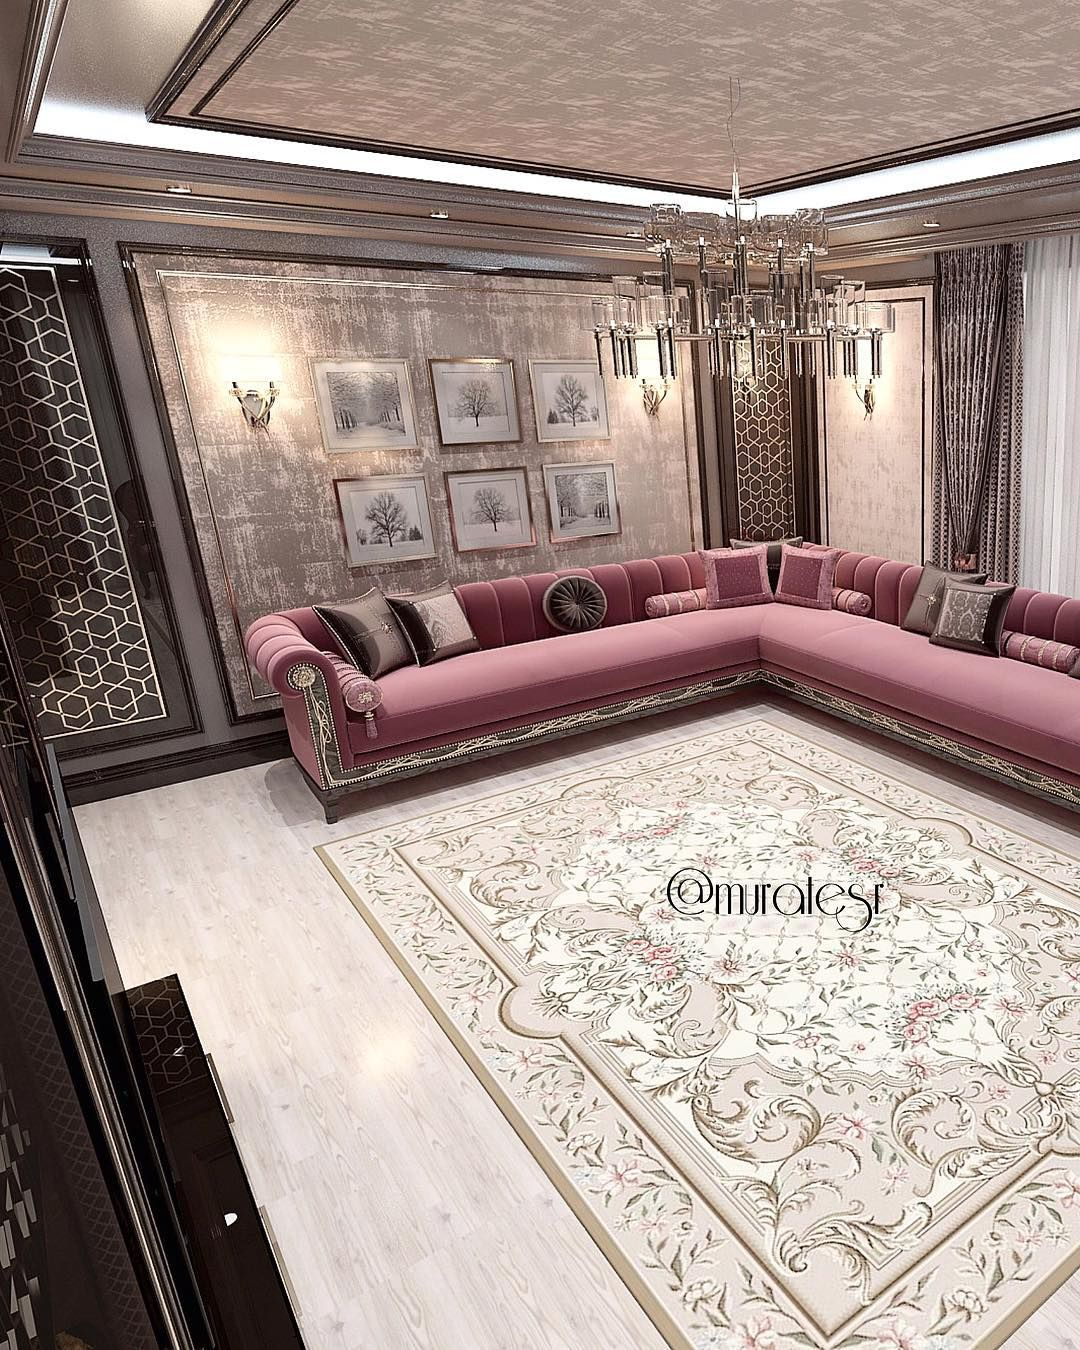 1 054 Likes 26 Comments Murat Gulercoban Muratesr On Instagram Customer Project Perfect Project Perfect Living Room Color Living Room Decor Furniture